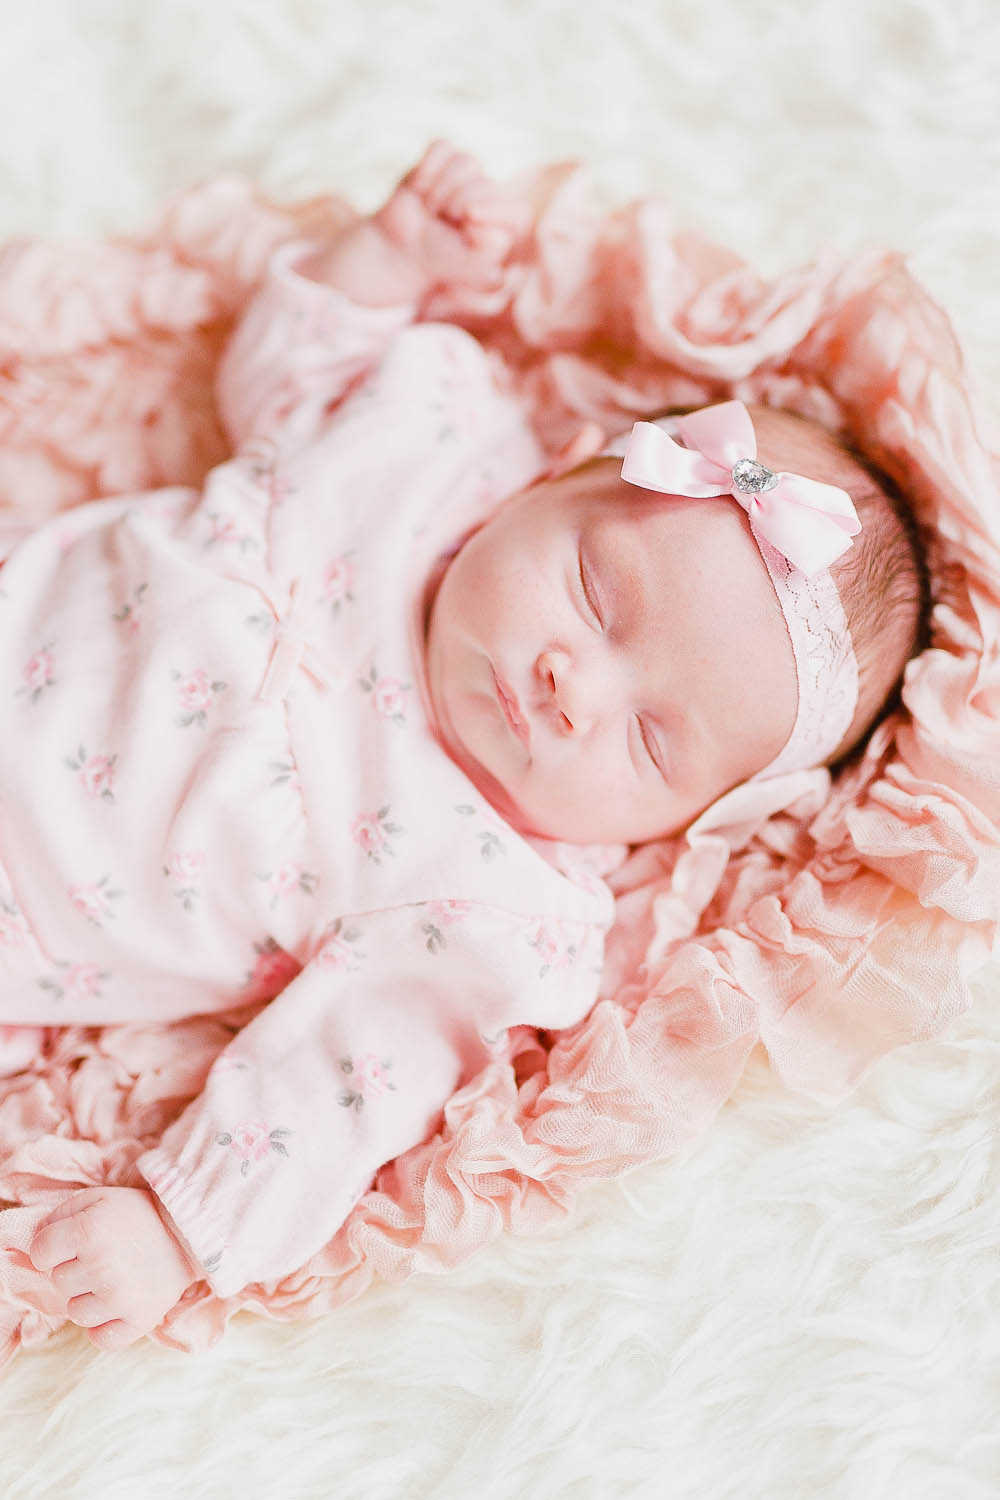 newborn-photography-ashford-3.jpg